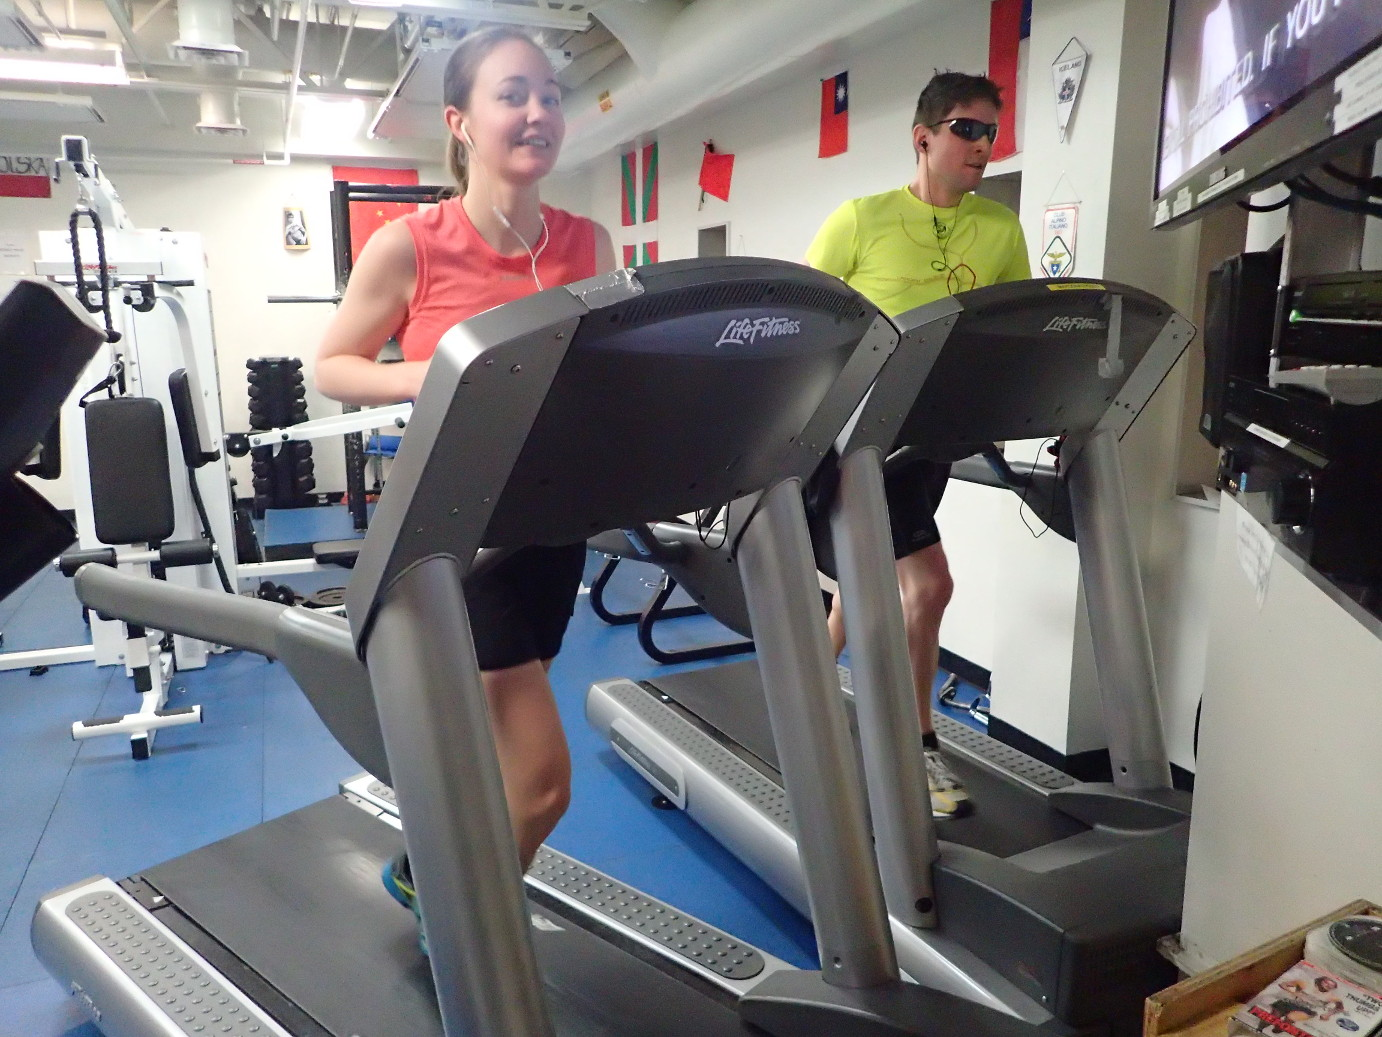 Discipline 5 - 10k treadmill run (Photo: Brett Baddorf)